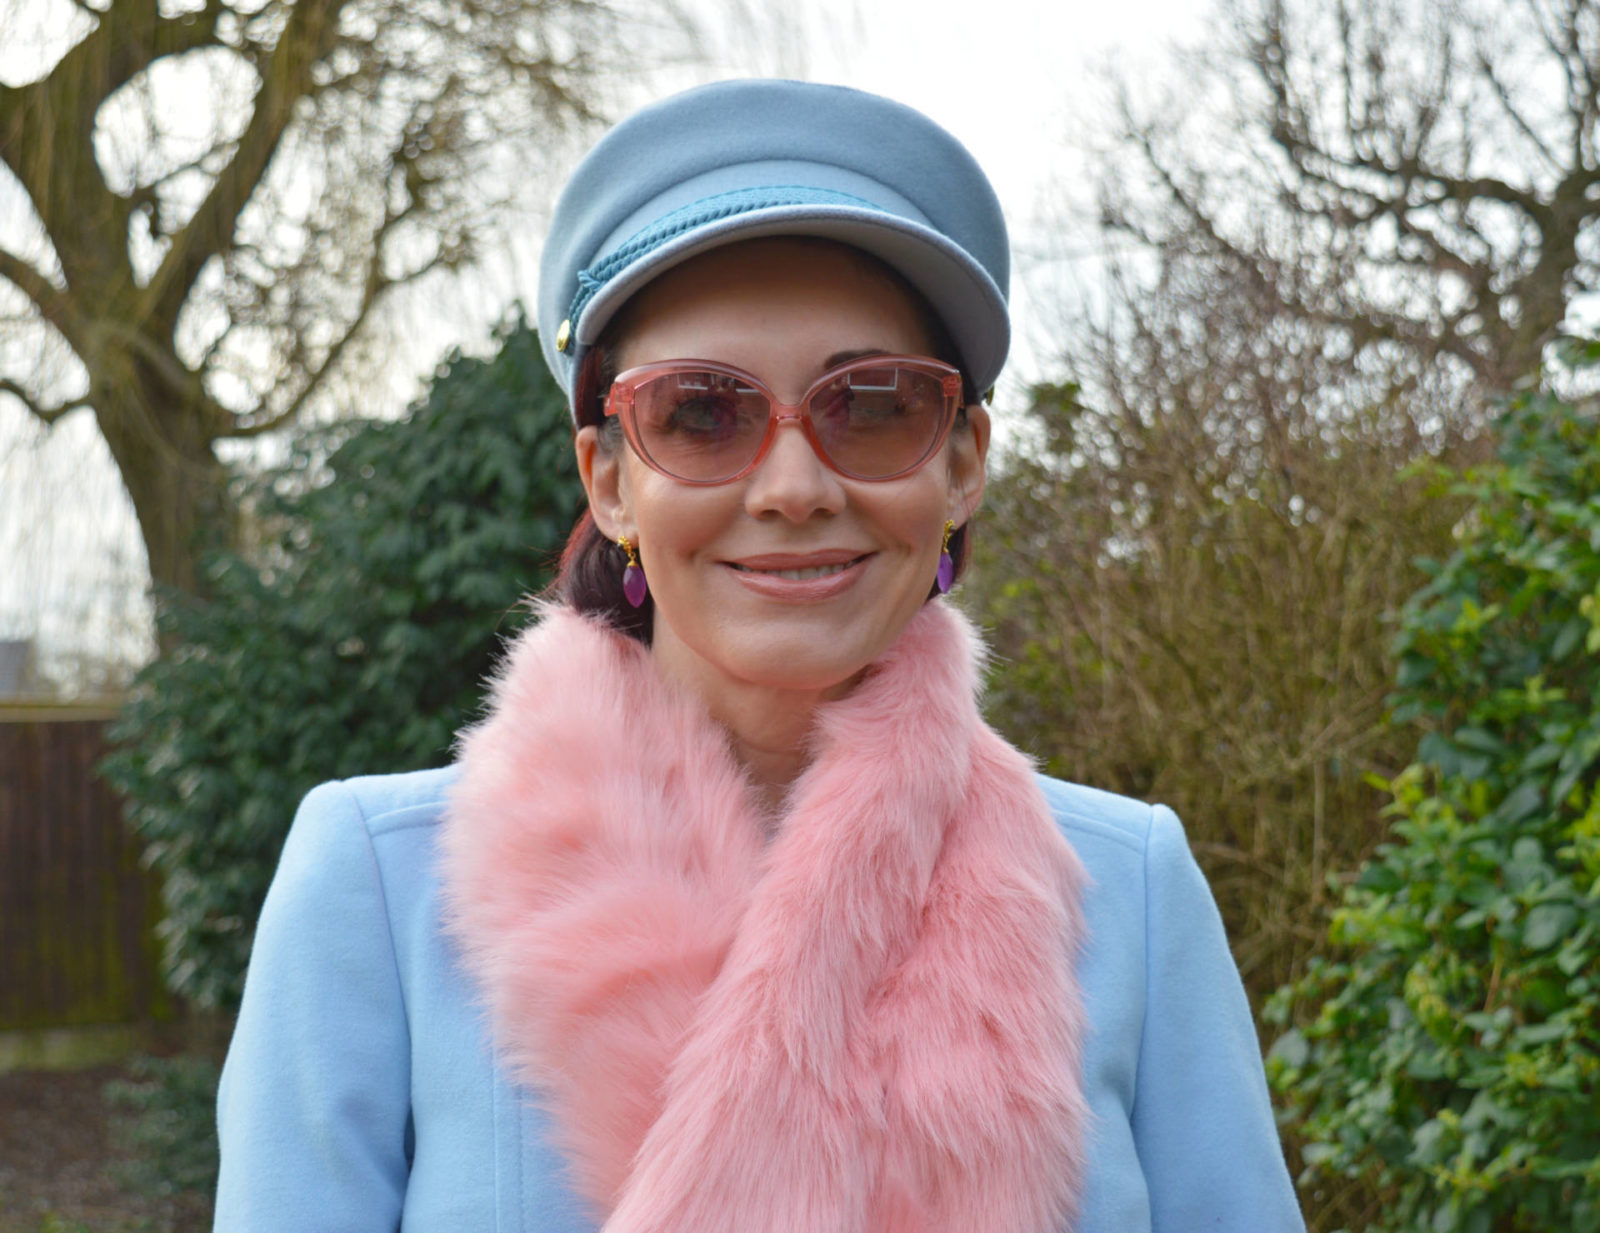 Pale Blue and Shades of Pink, Fabienne Chapot blue hat